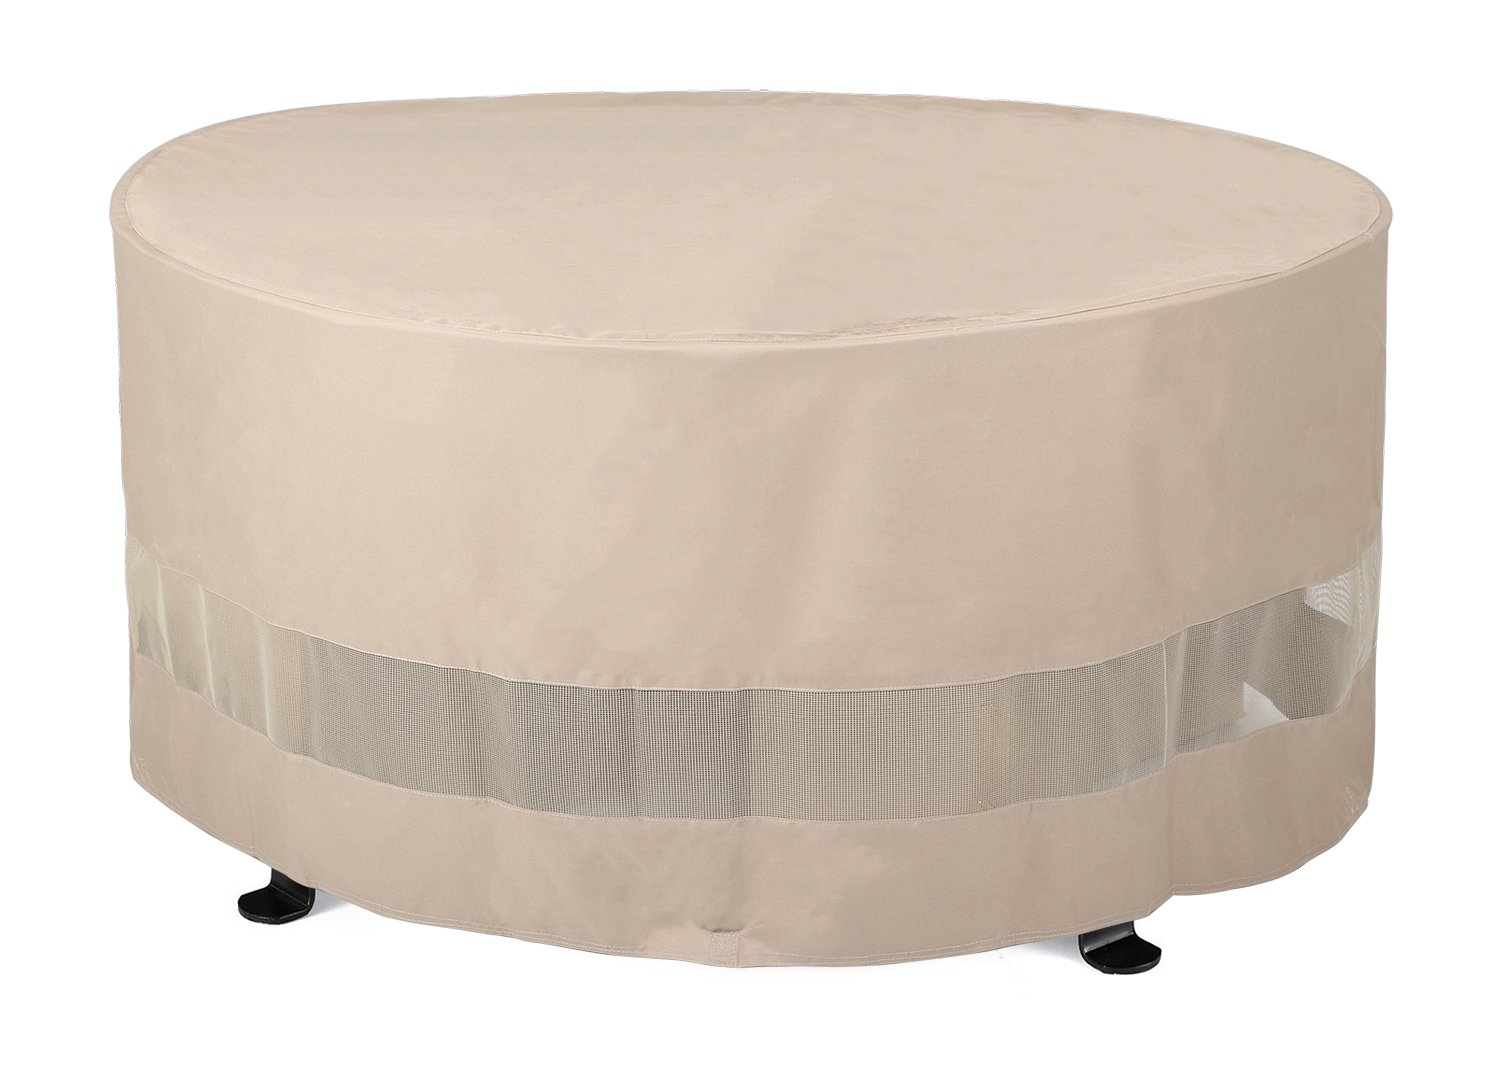 SunPatio Outdoor Round Fire Pit or Ottoman Cover,50''Diax24''H,Extremely Lightweight,Water Resistant,Eco-Friendly,Helpful Air Vents